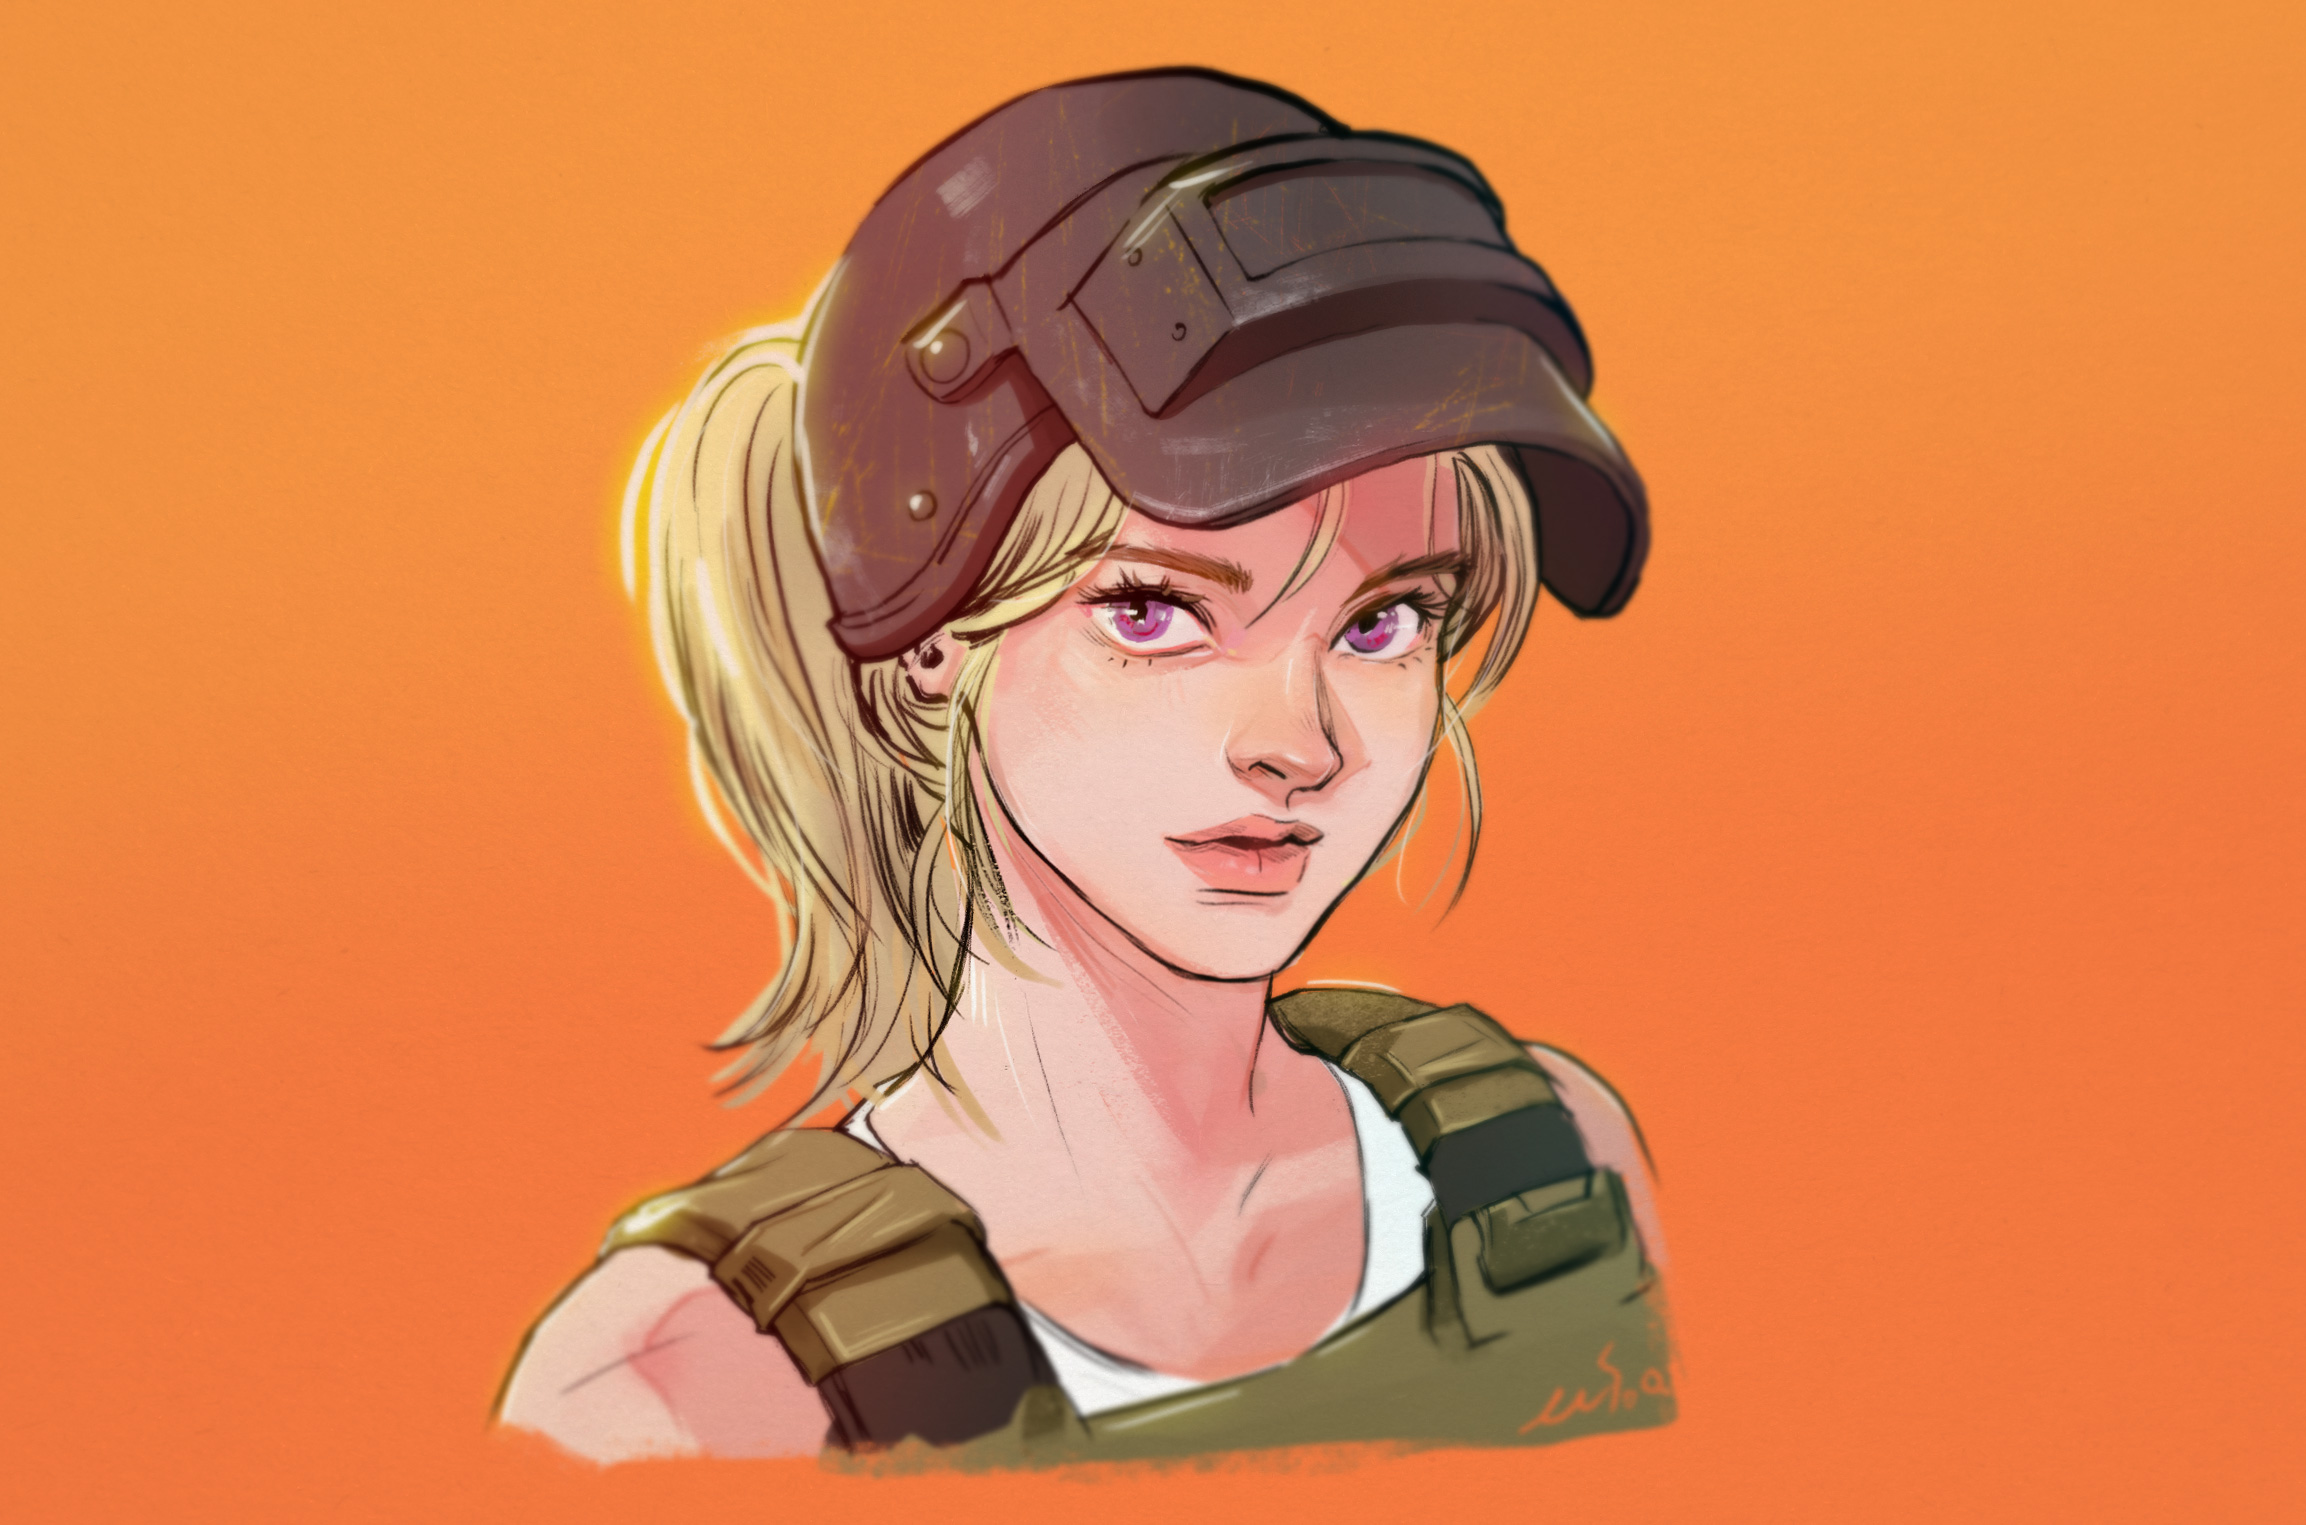 1366x768 Pubg Girl 1366x768 Resolution HD 4k Wallpapers